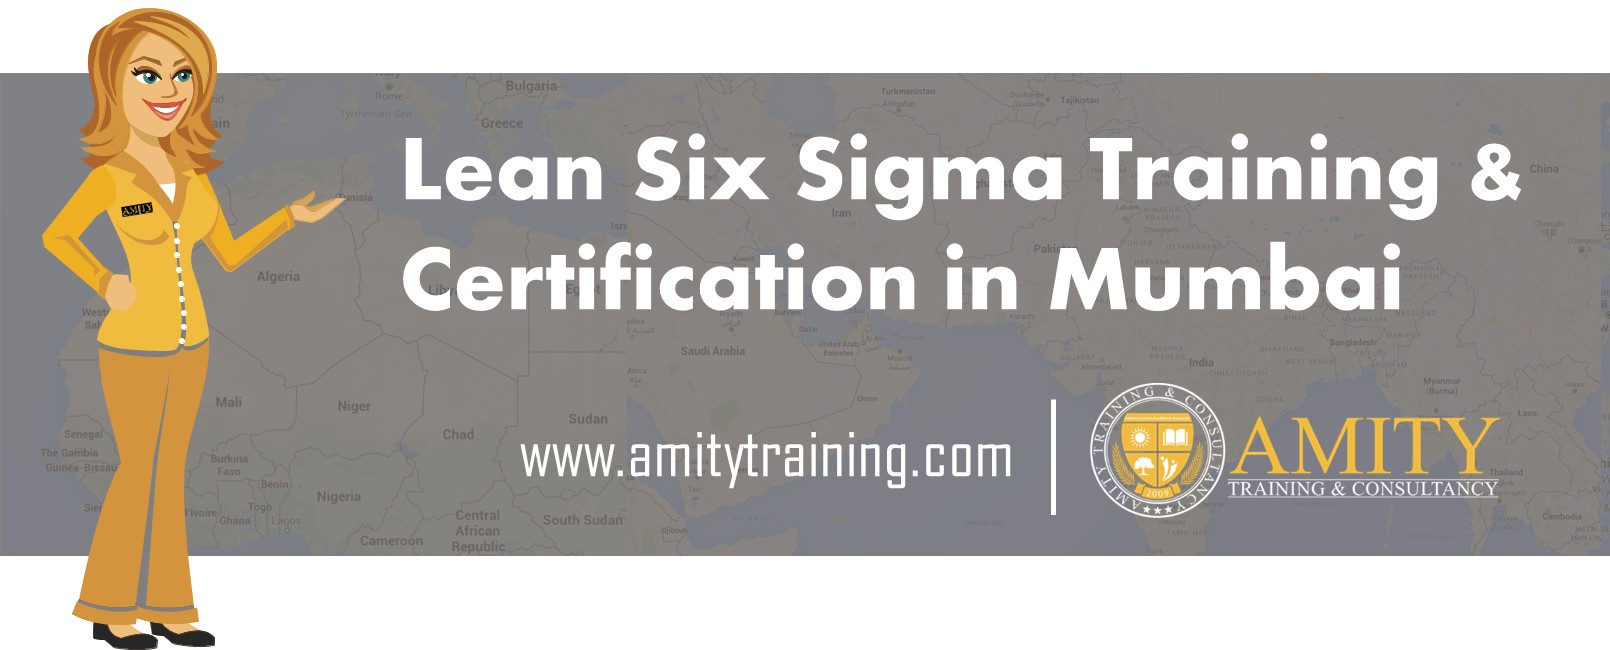 Lean six sigma training in mumbai amity training and consultancy lean six sigma training in mumbai 1betcityfo Image collections